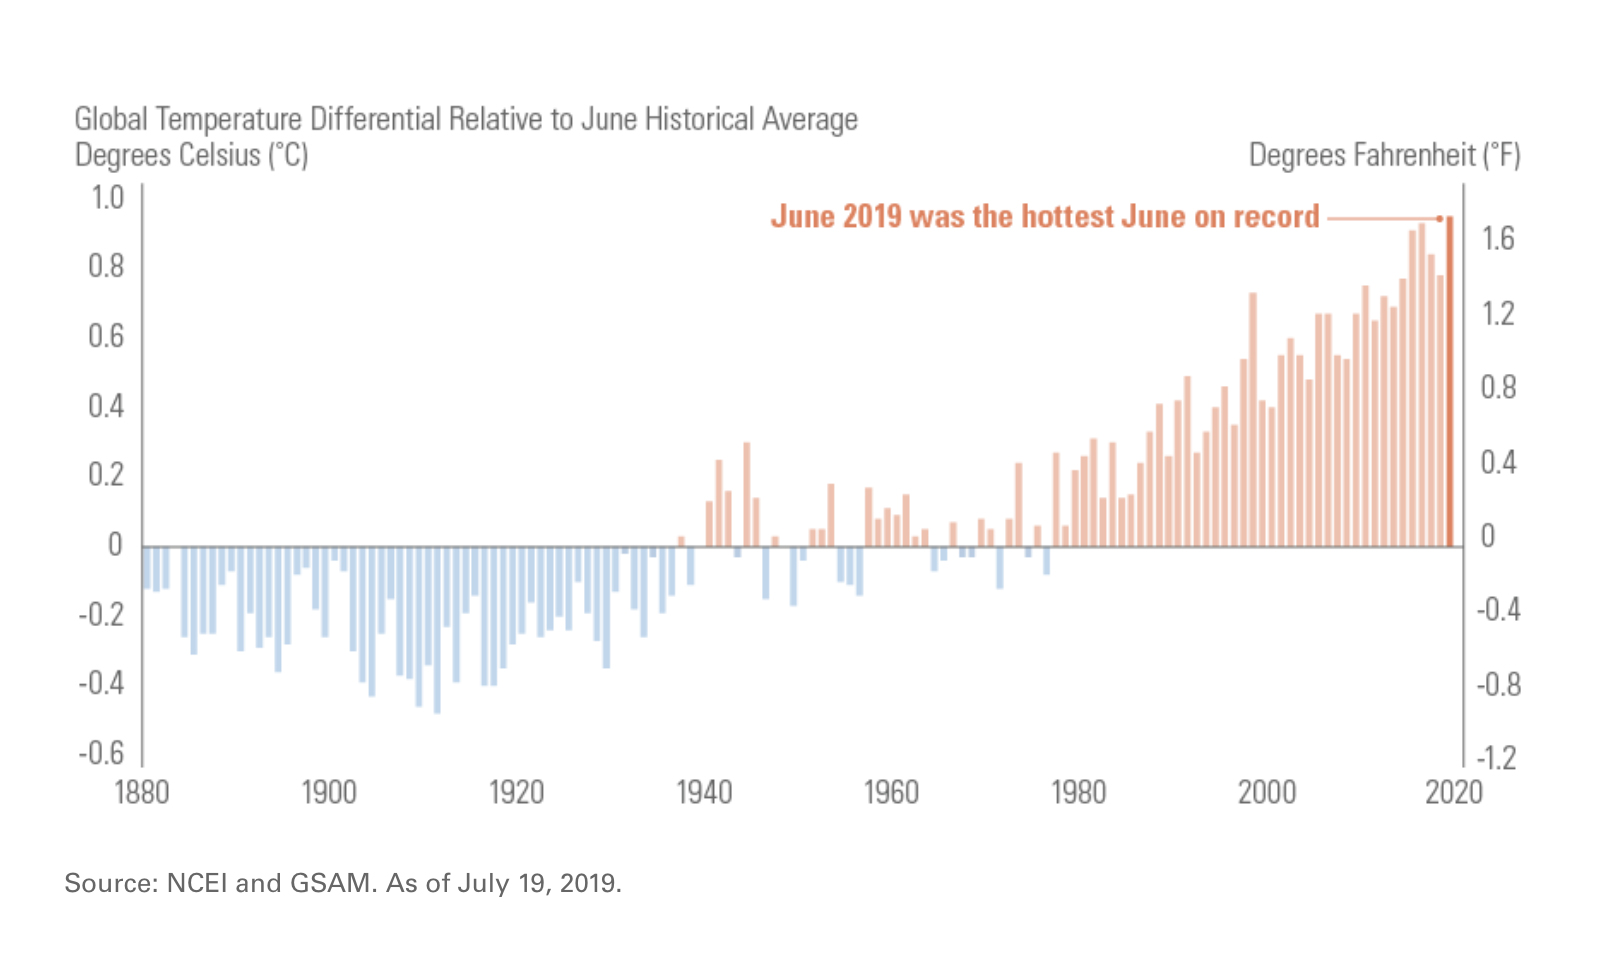 Global Temperature Differential Relative to June Historical Average